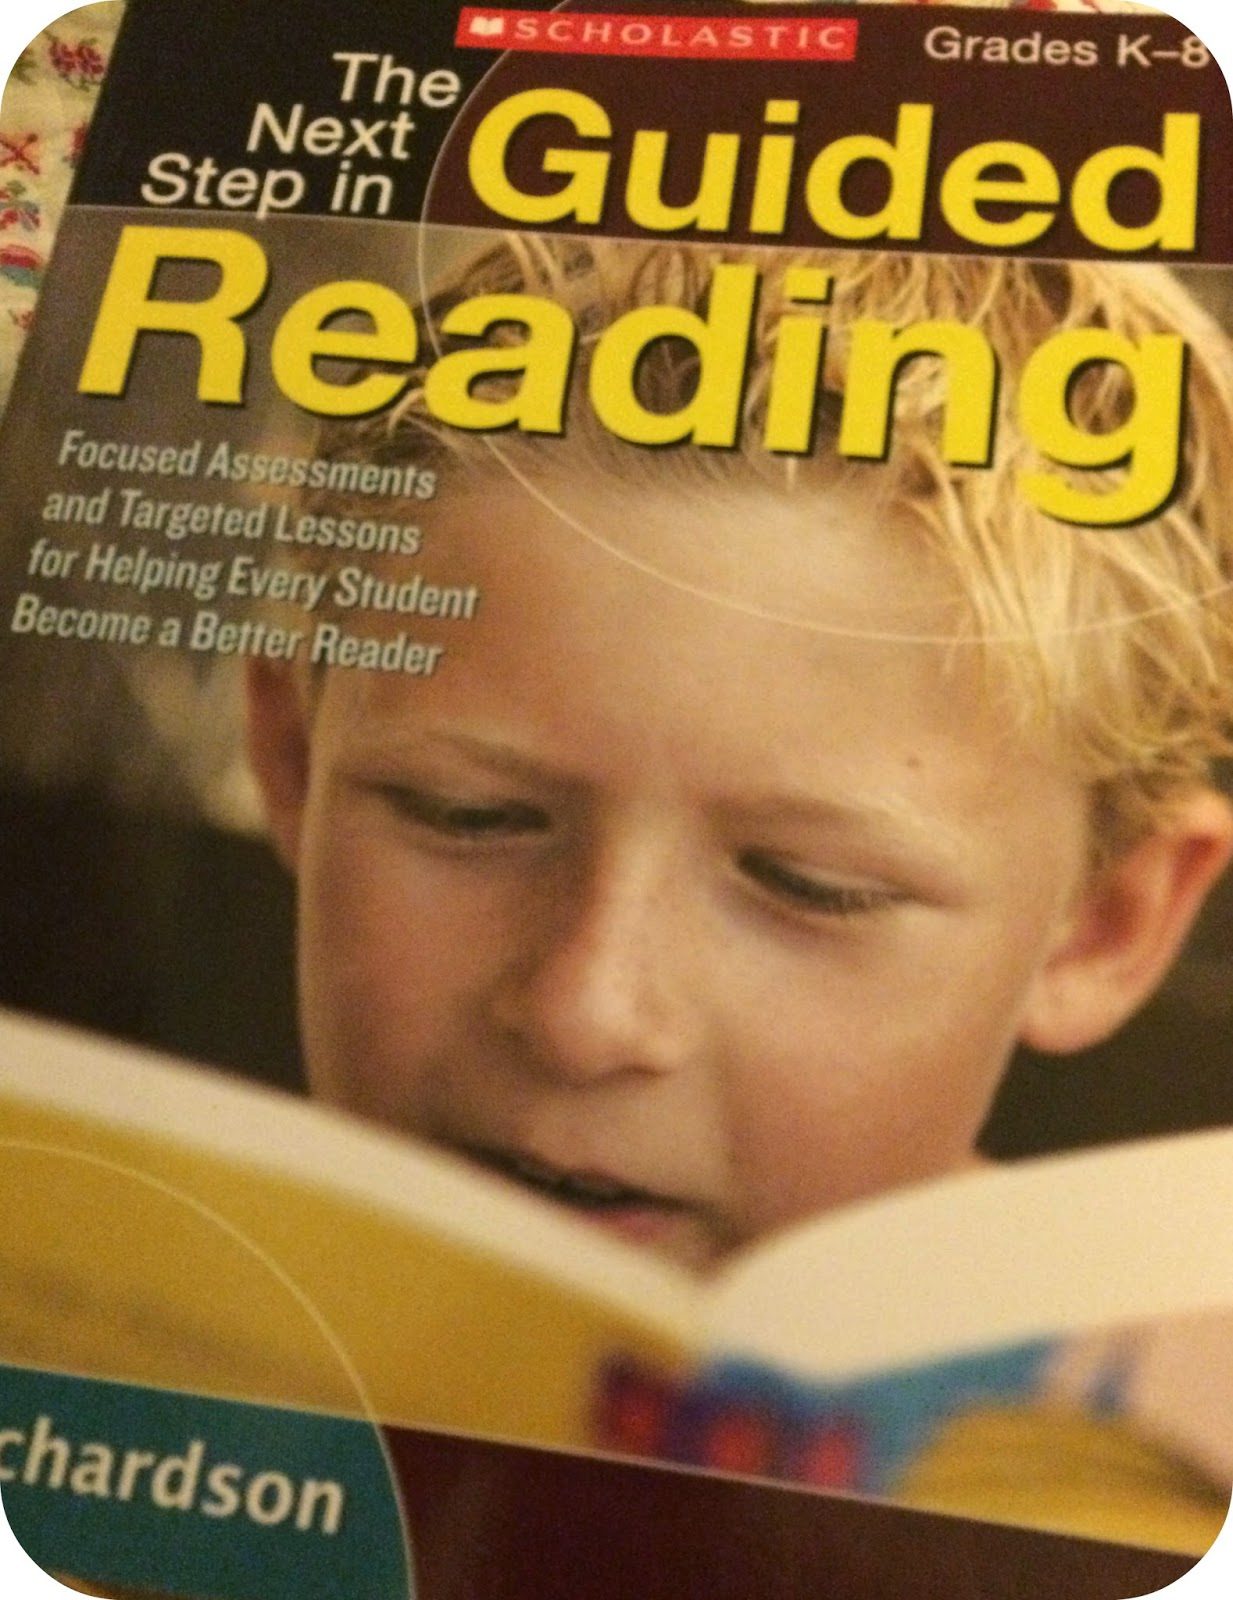 http://www.janrichardsonguidedreading.com/services